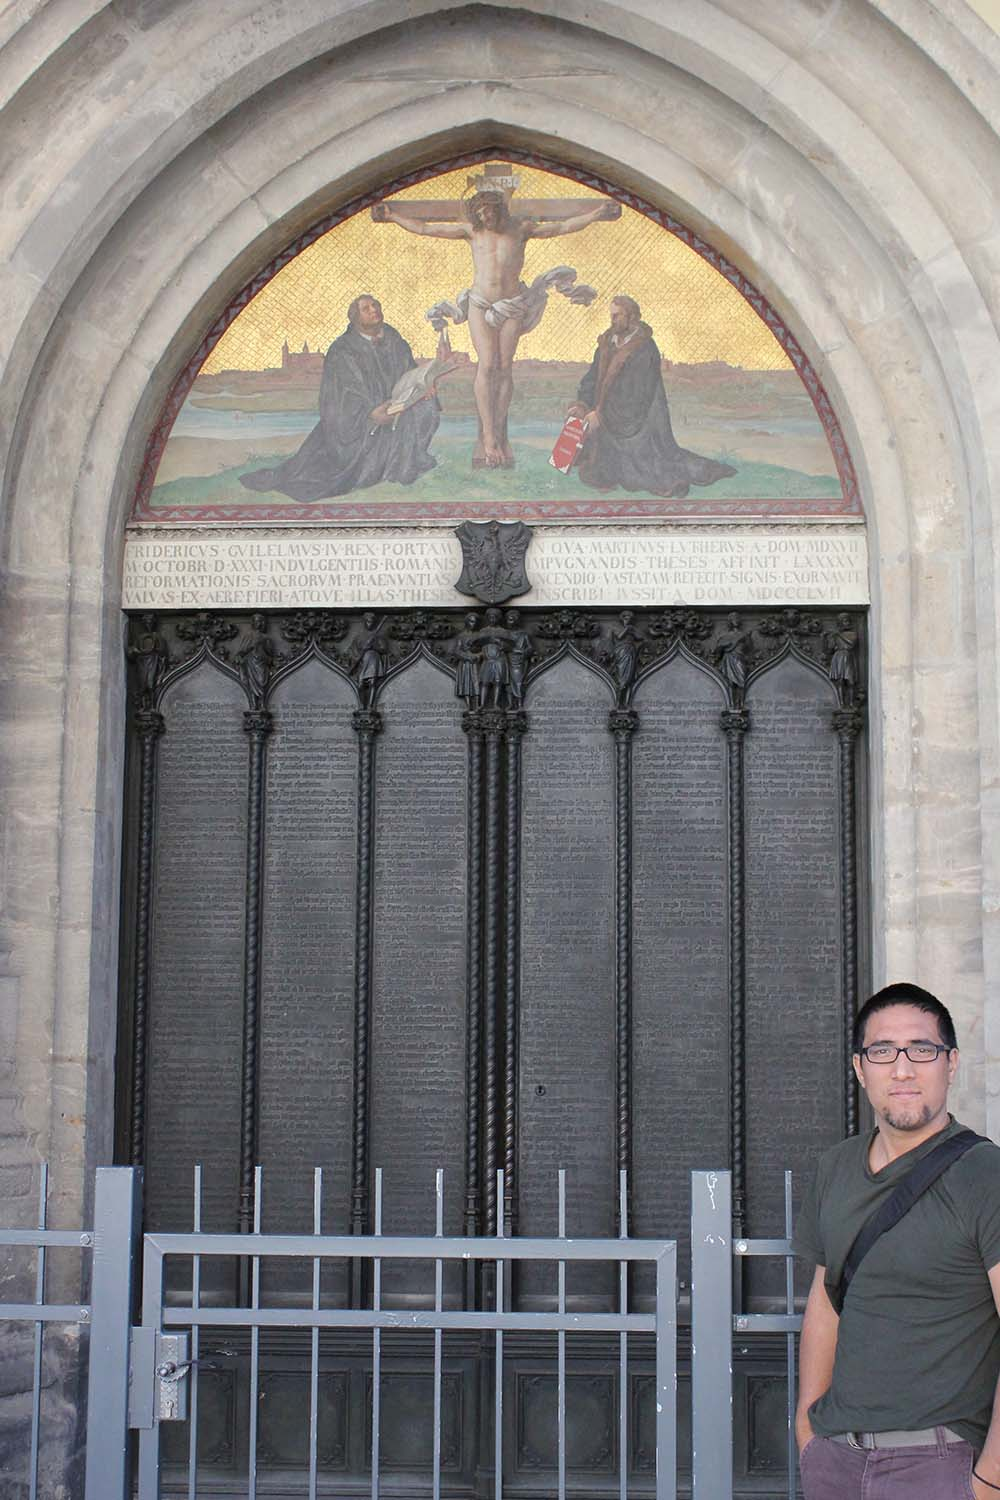 Me standing in front of the new door (where the old door used to be) on which Luther nailed his 95 theses.